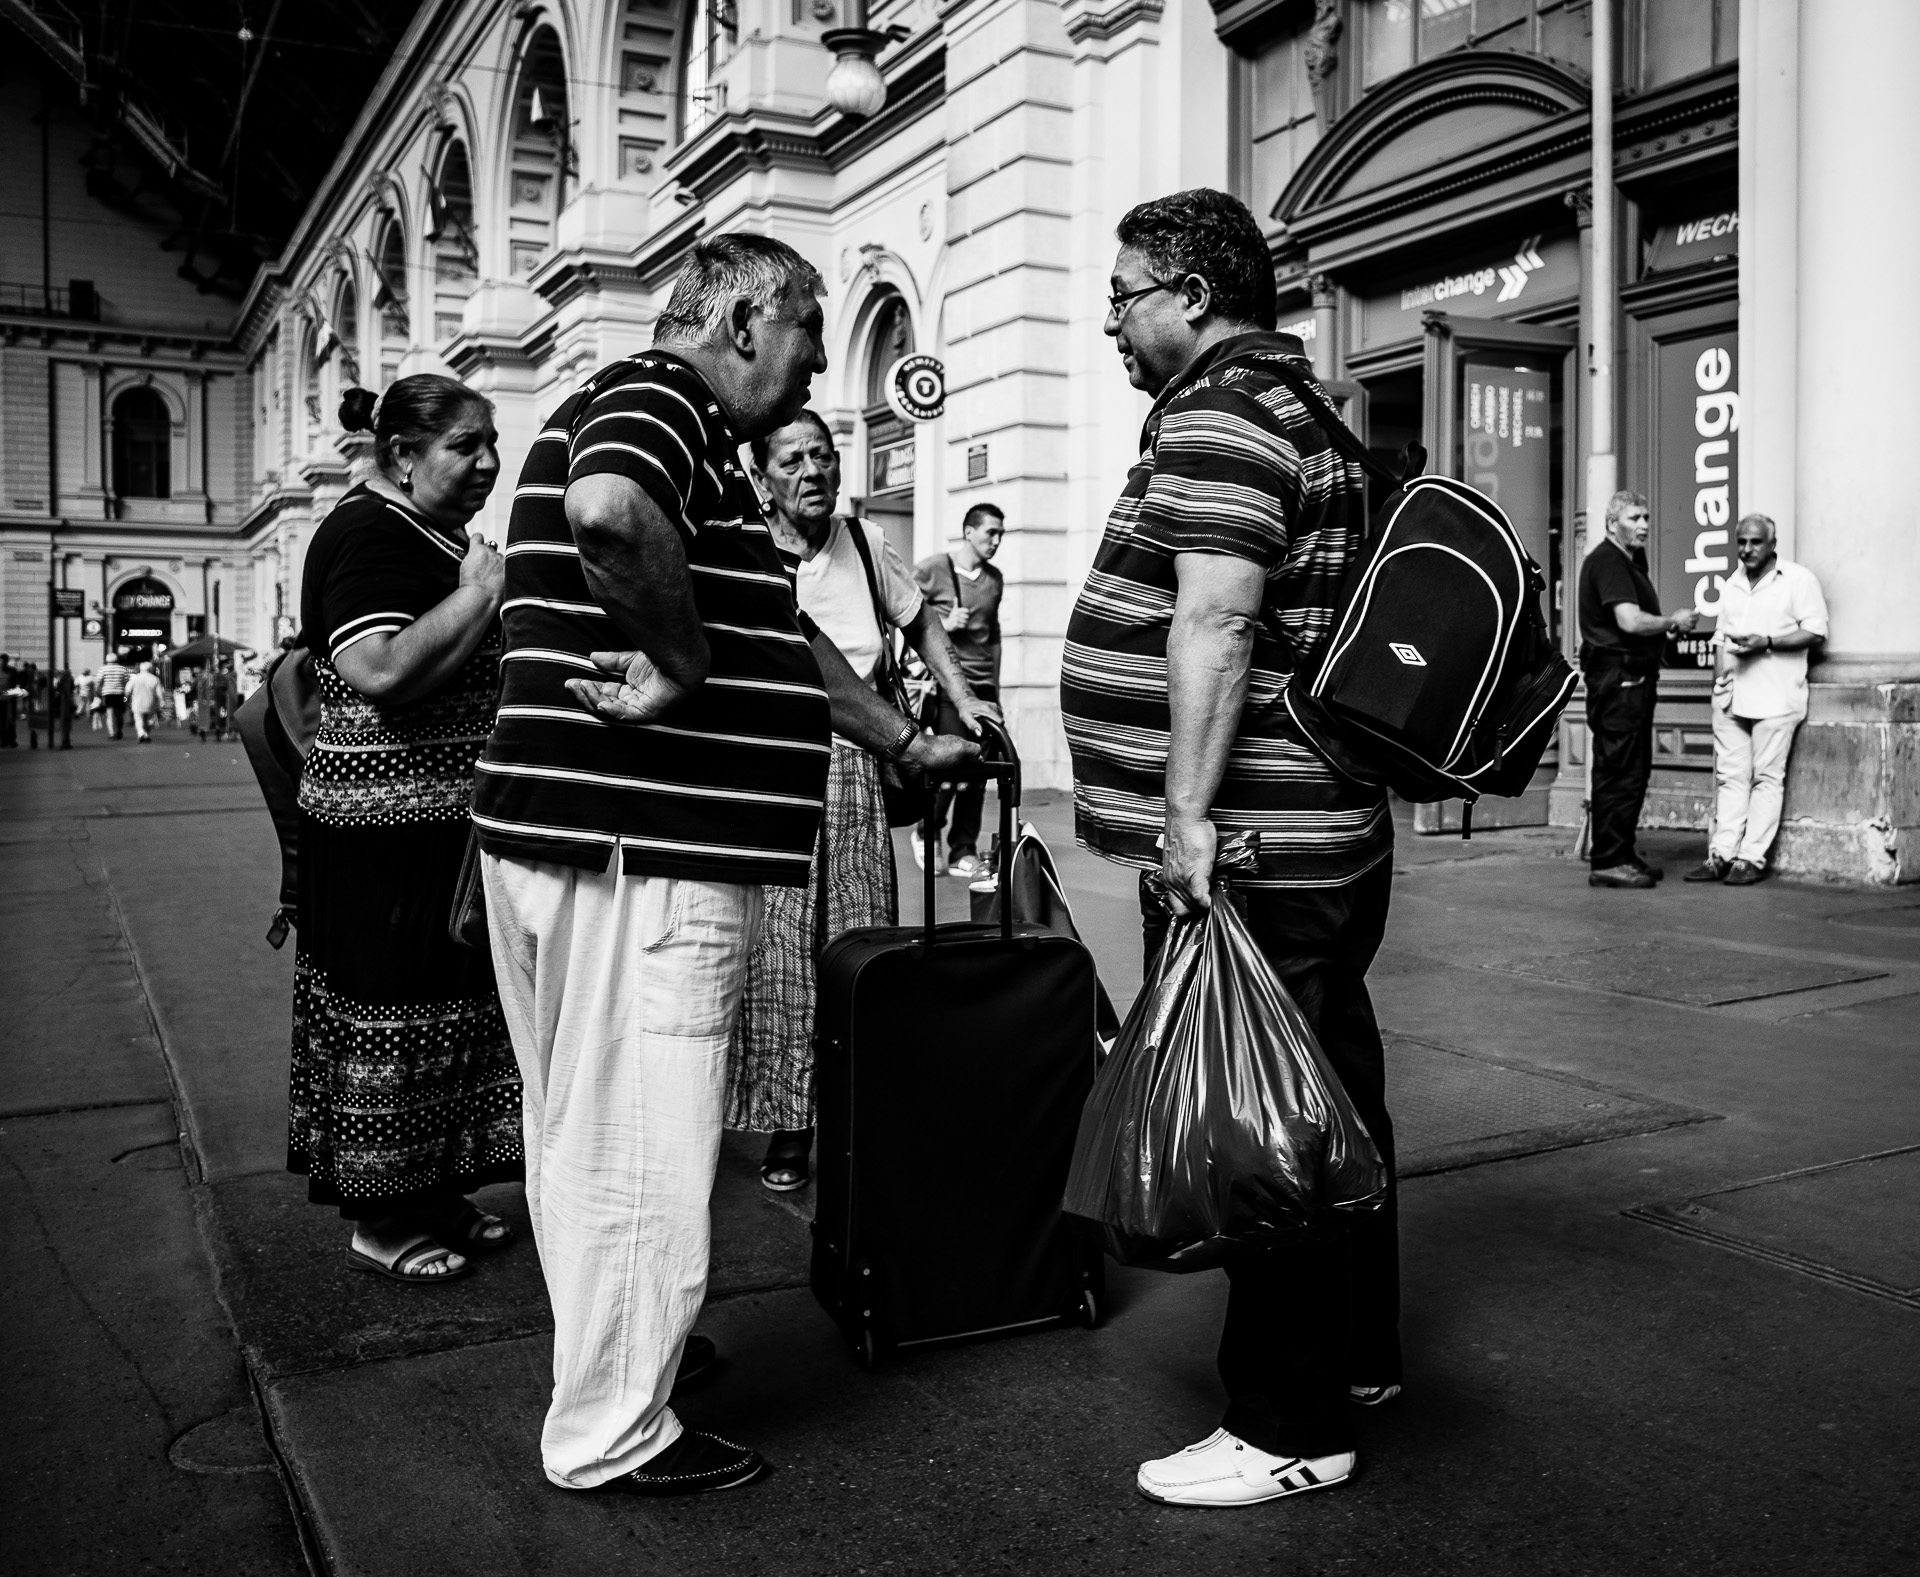 Life in Budapest, Hungary